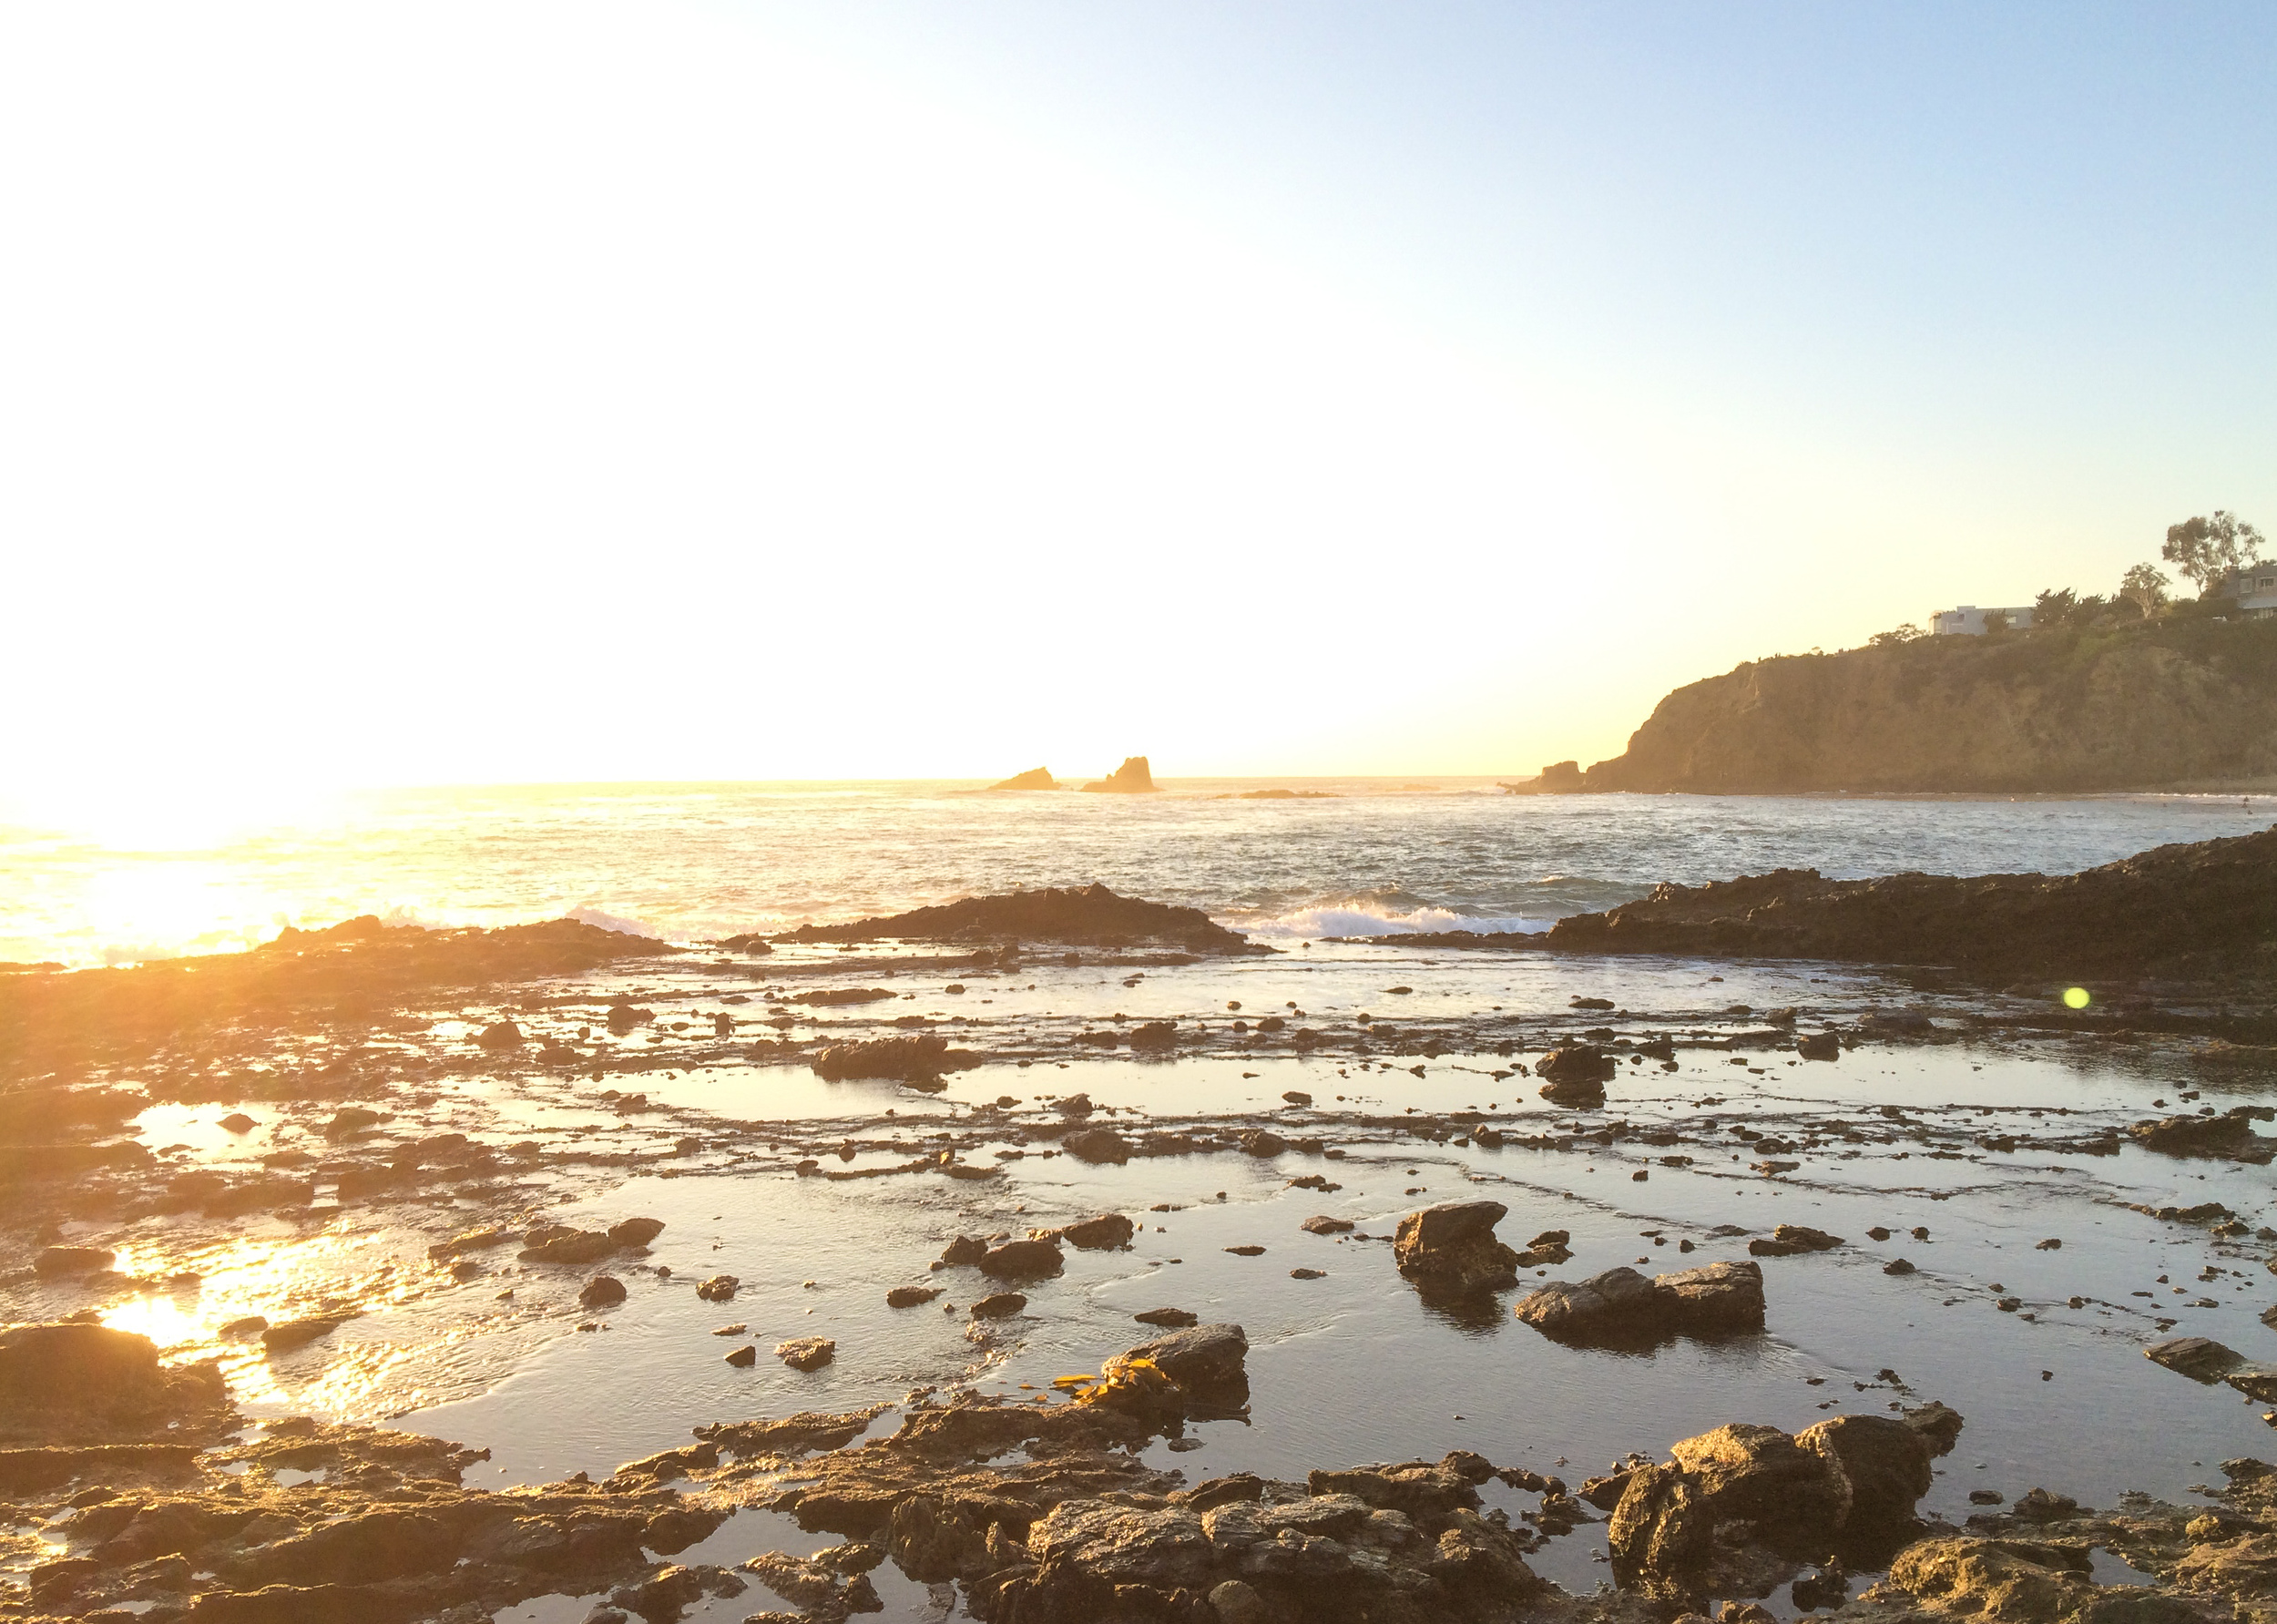 Seal Rock in the distance.